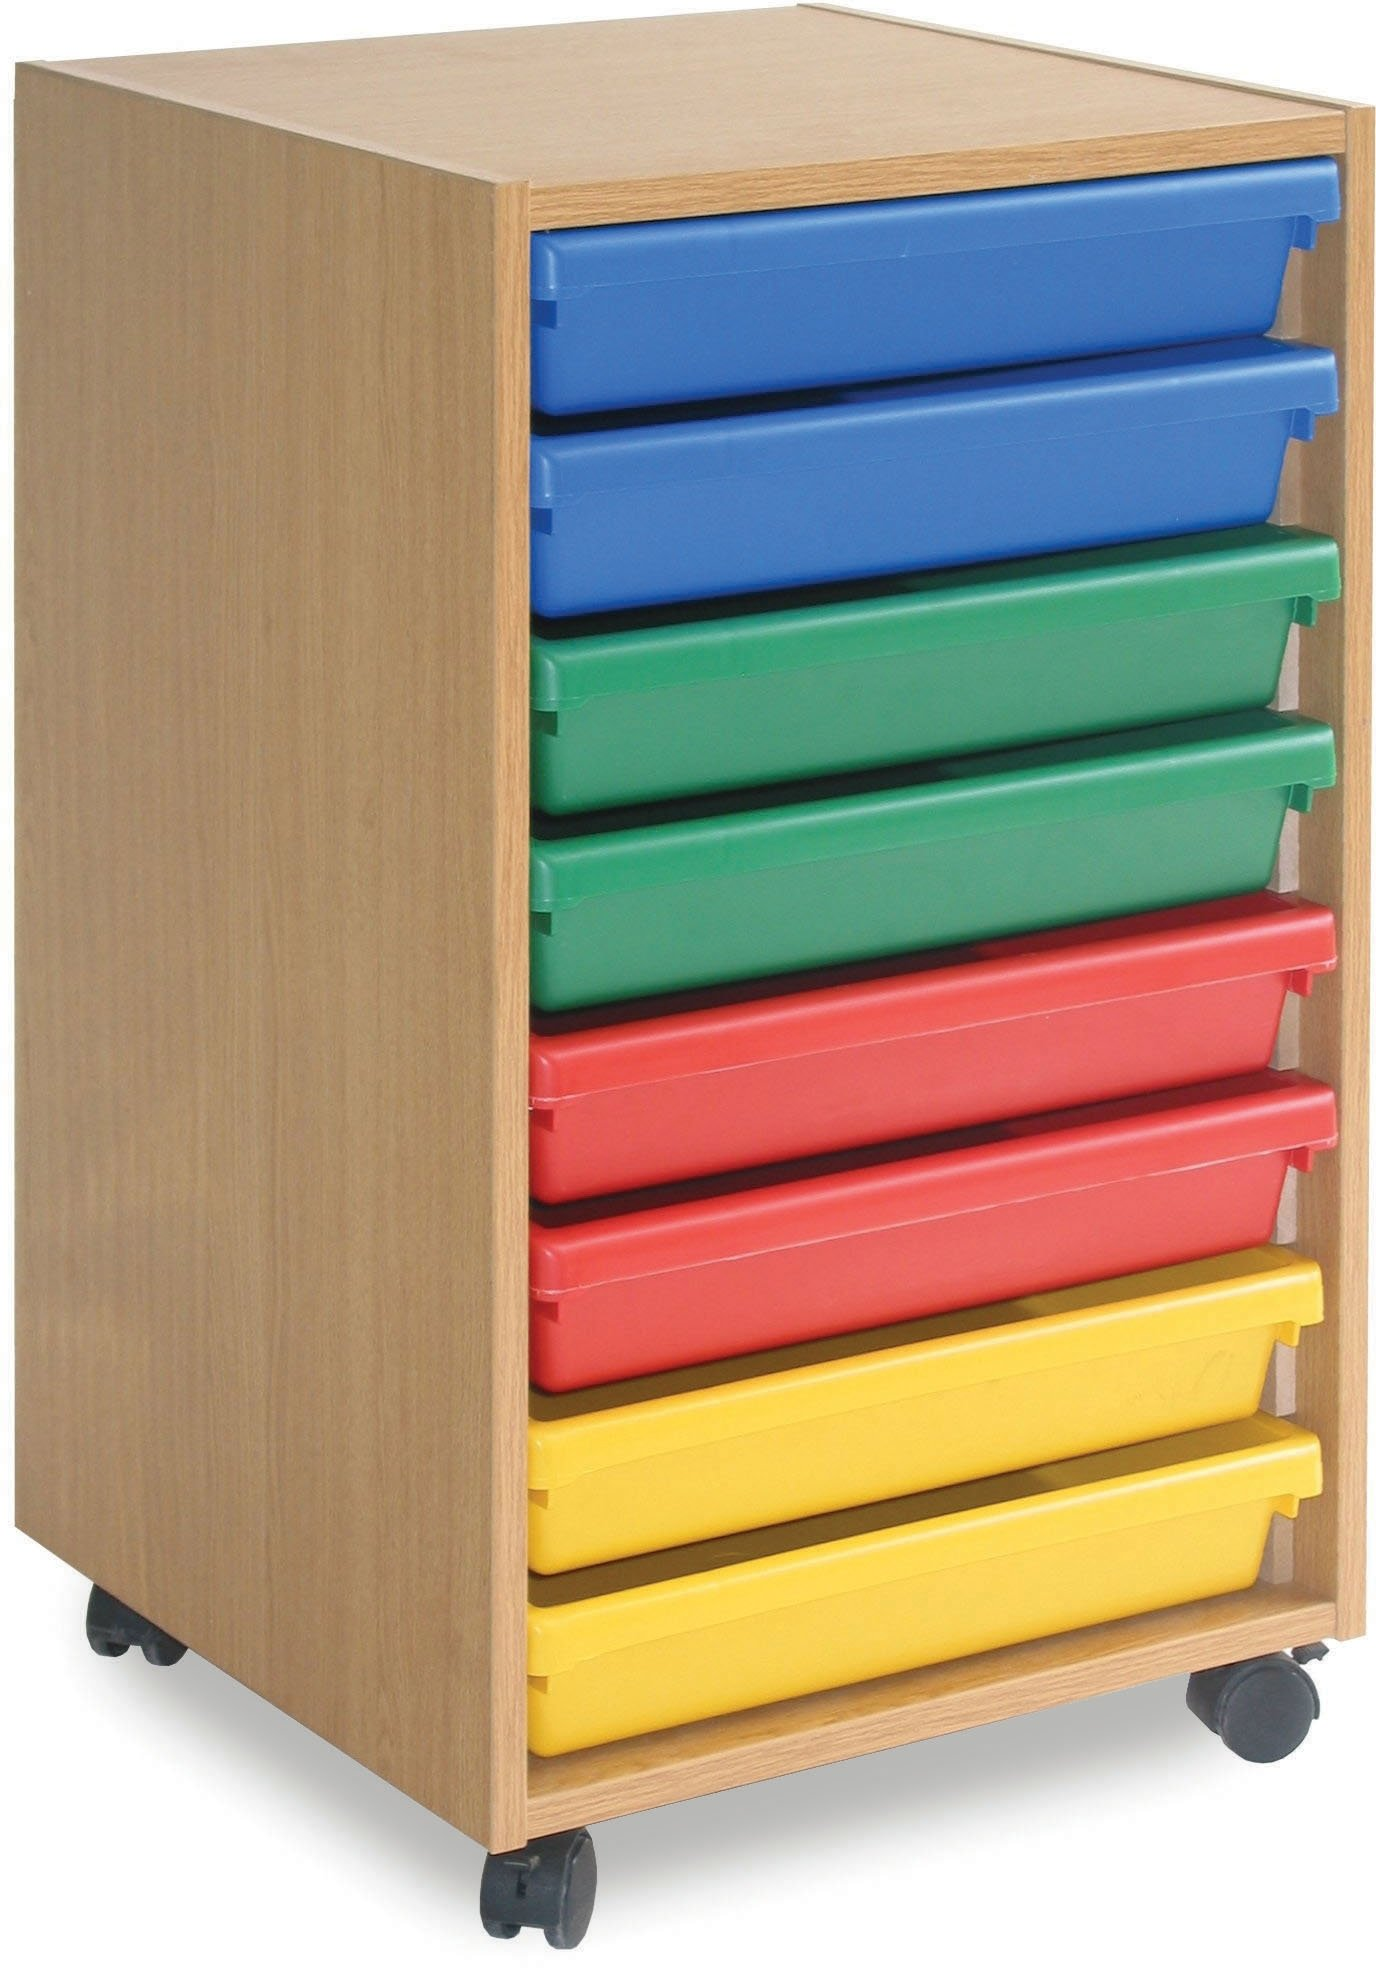 & Art Storage 8 Tray A3 Paper Storage Unit